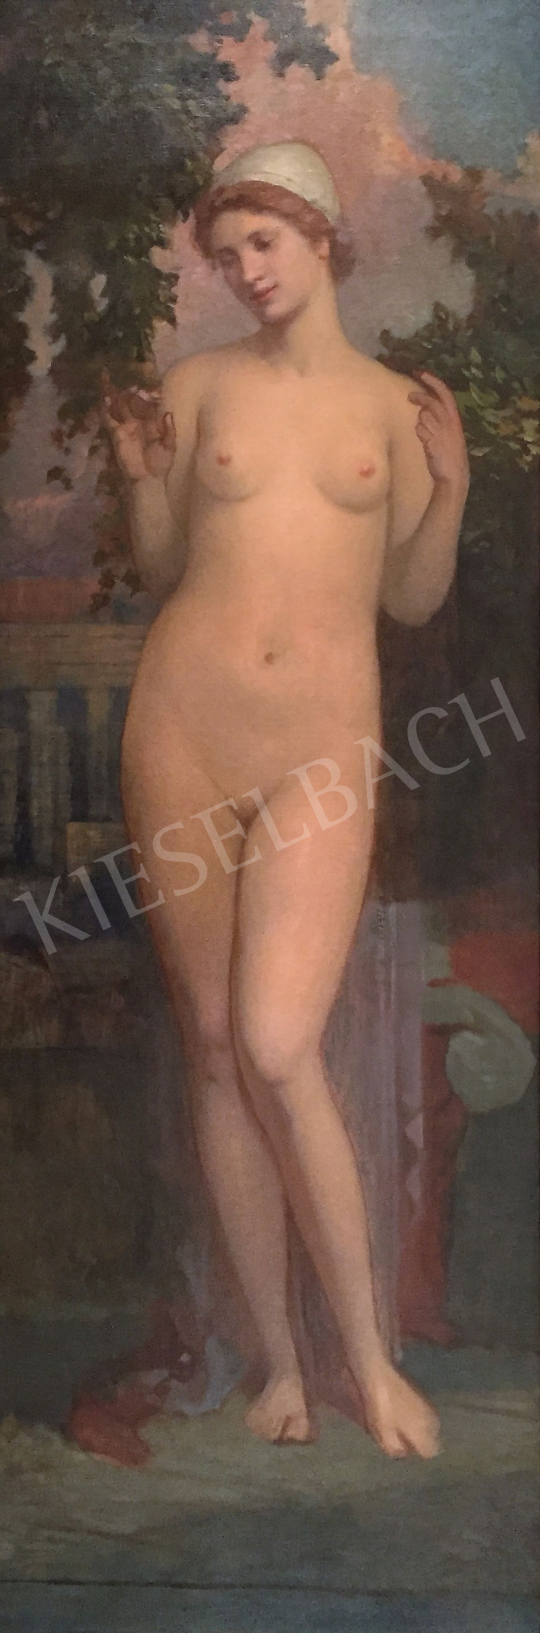 Stein, János Gábor - Young Female Nude on the Terrace of the Palace painting